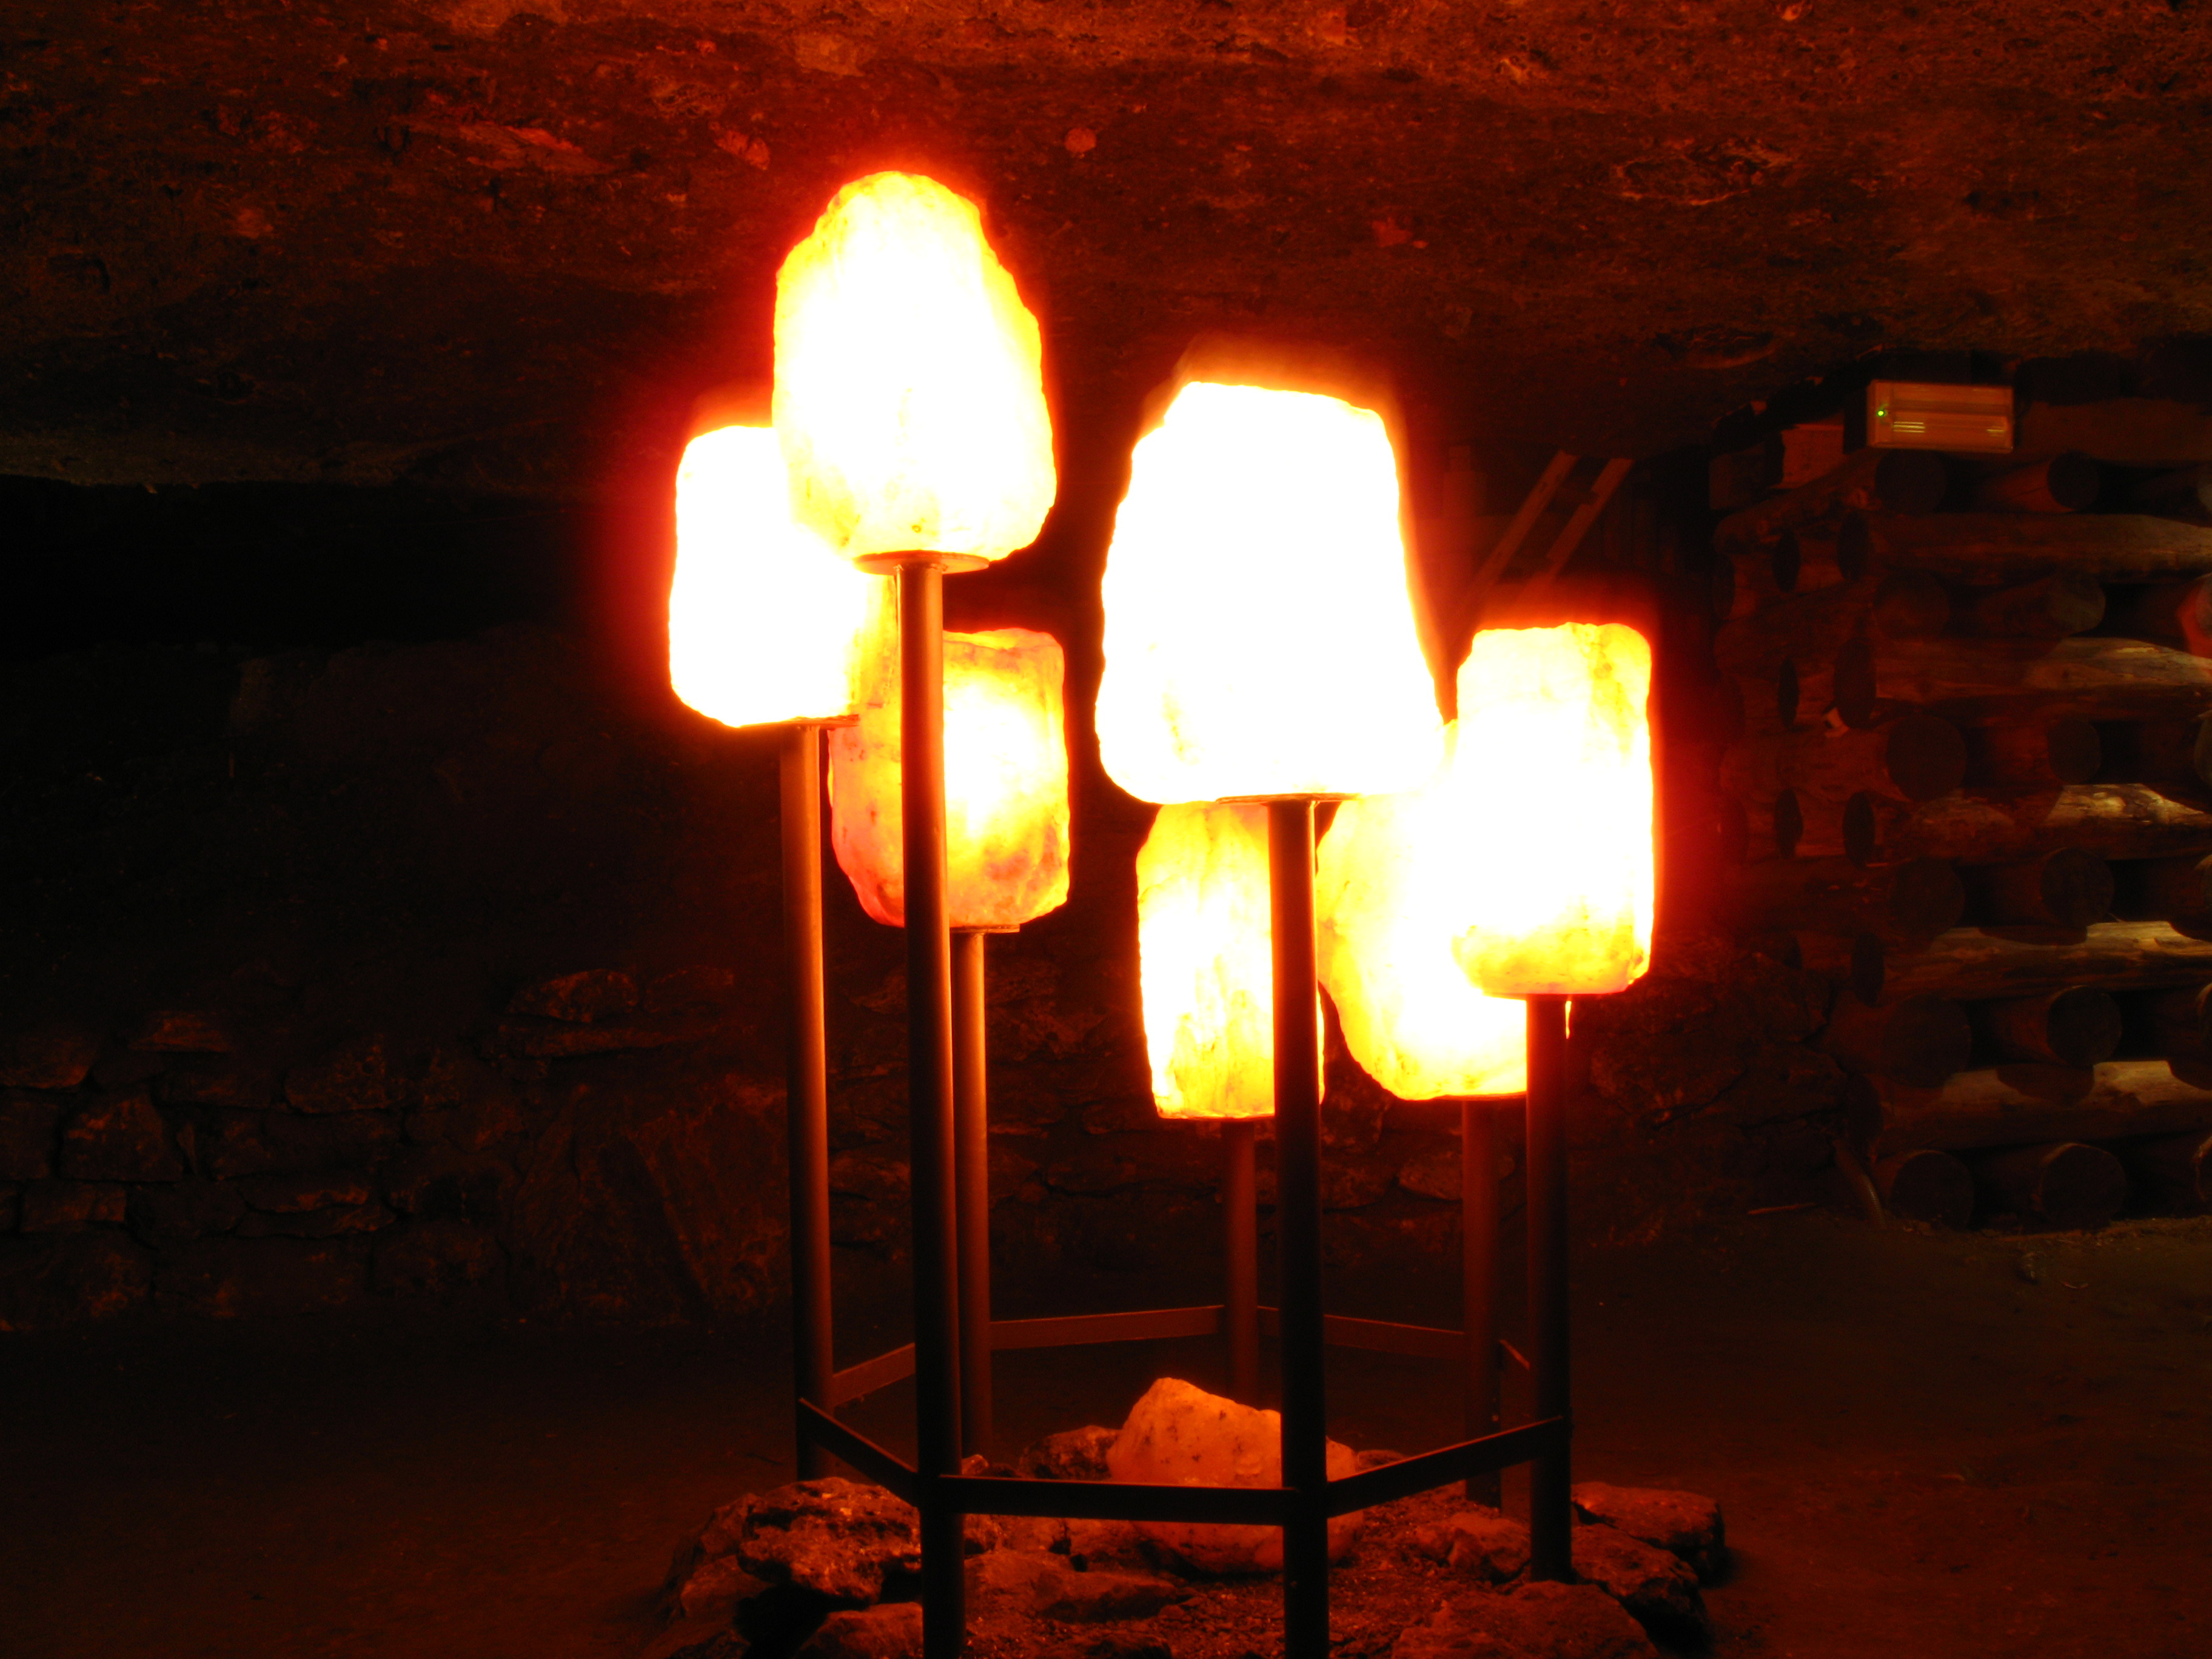 History Of Salt Lamps : File:1090 - Hallstatt - Salzbergwerk - Salt Lamps.JPG - Wikimedia Commons